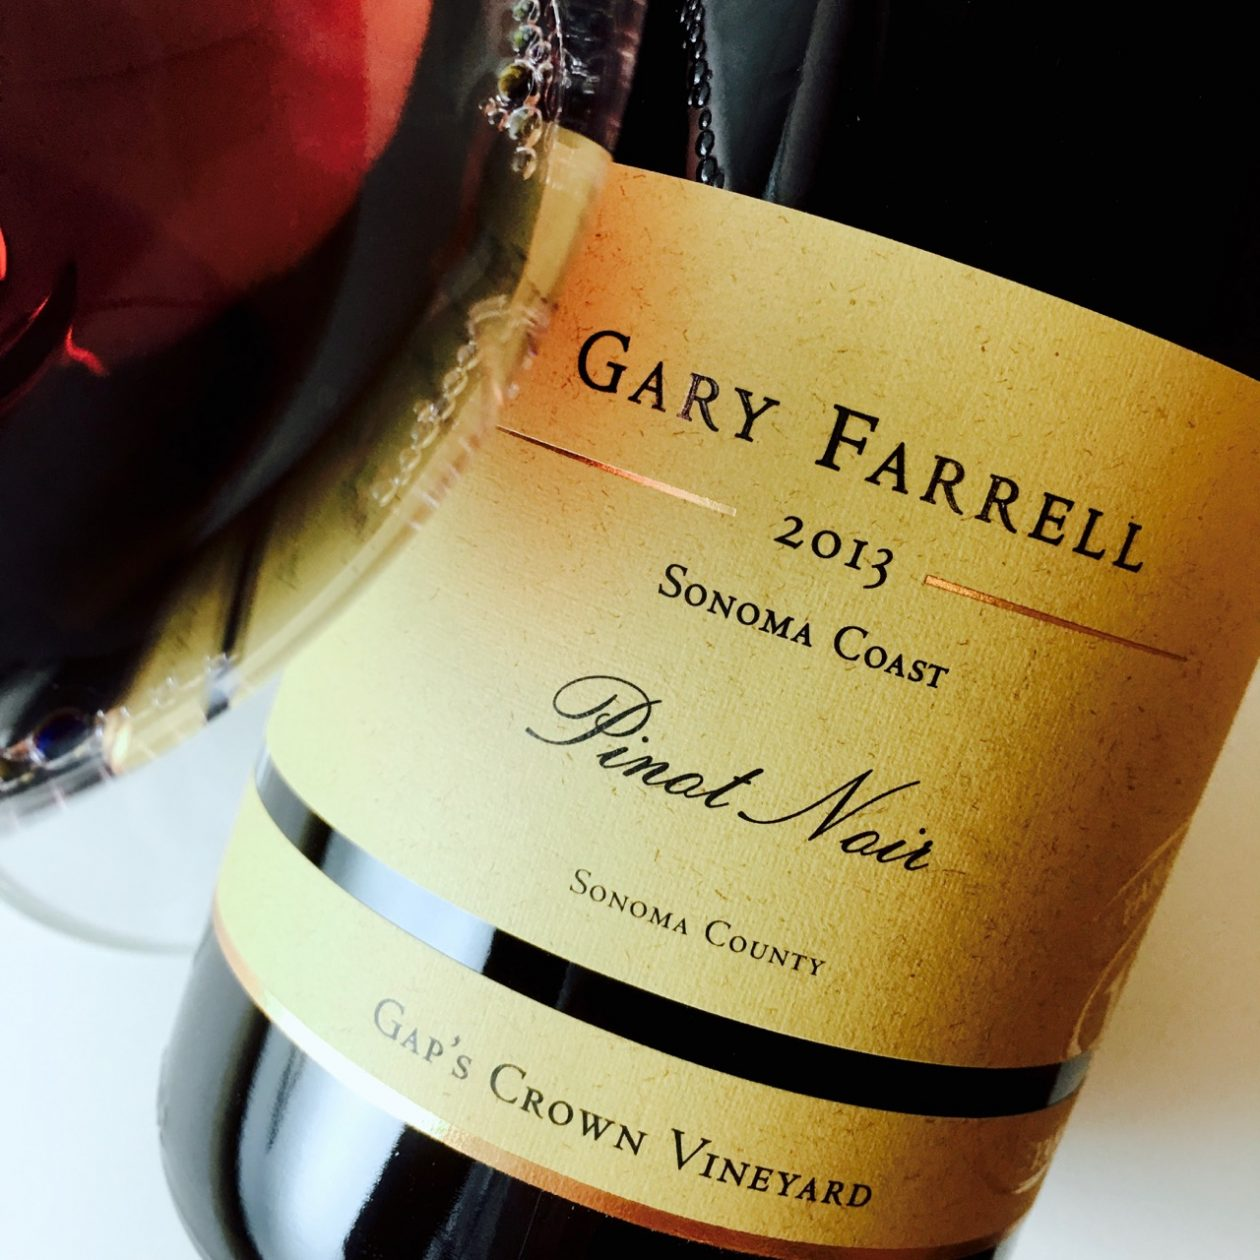 2013 Gary Farrell Pinot Noir Gap's Crown Vineyard Sonoma Coast, Sonoma County